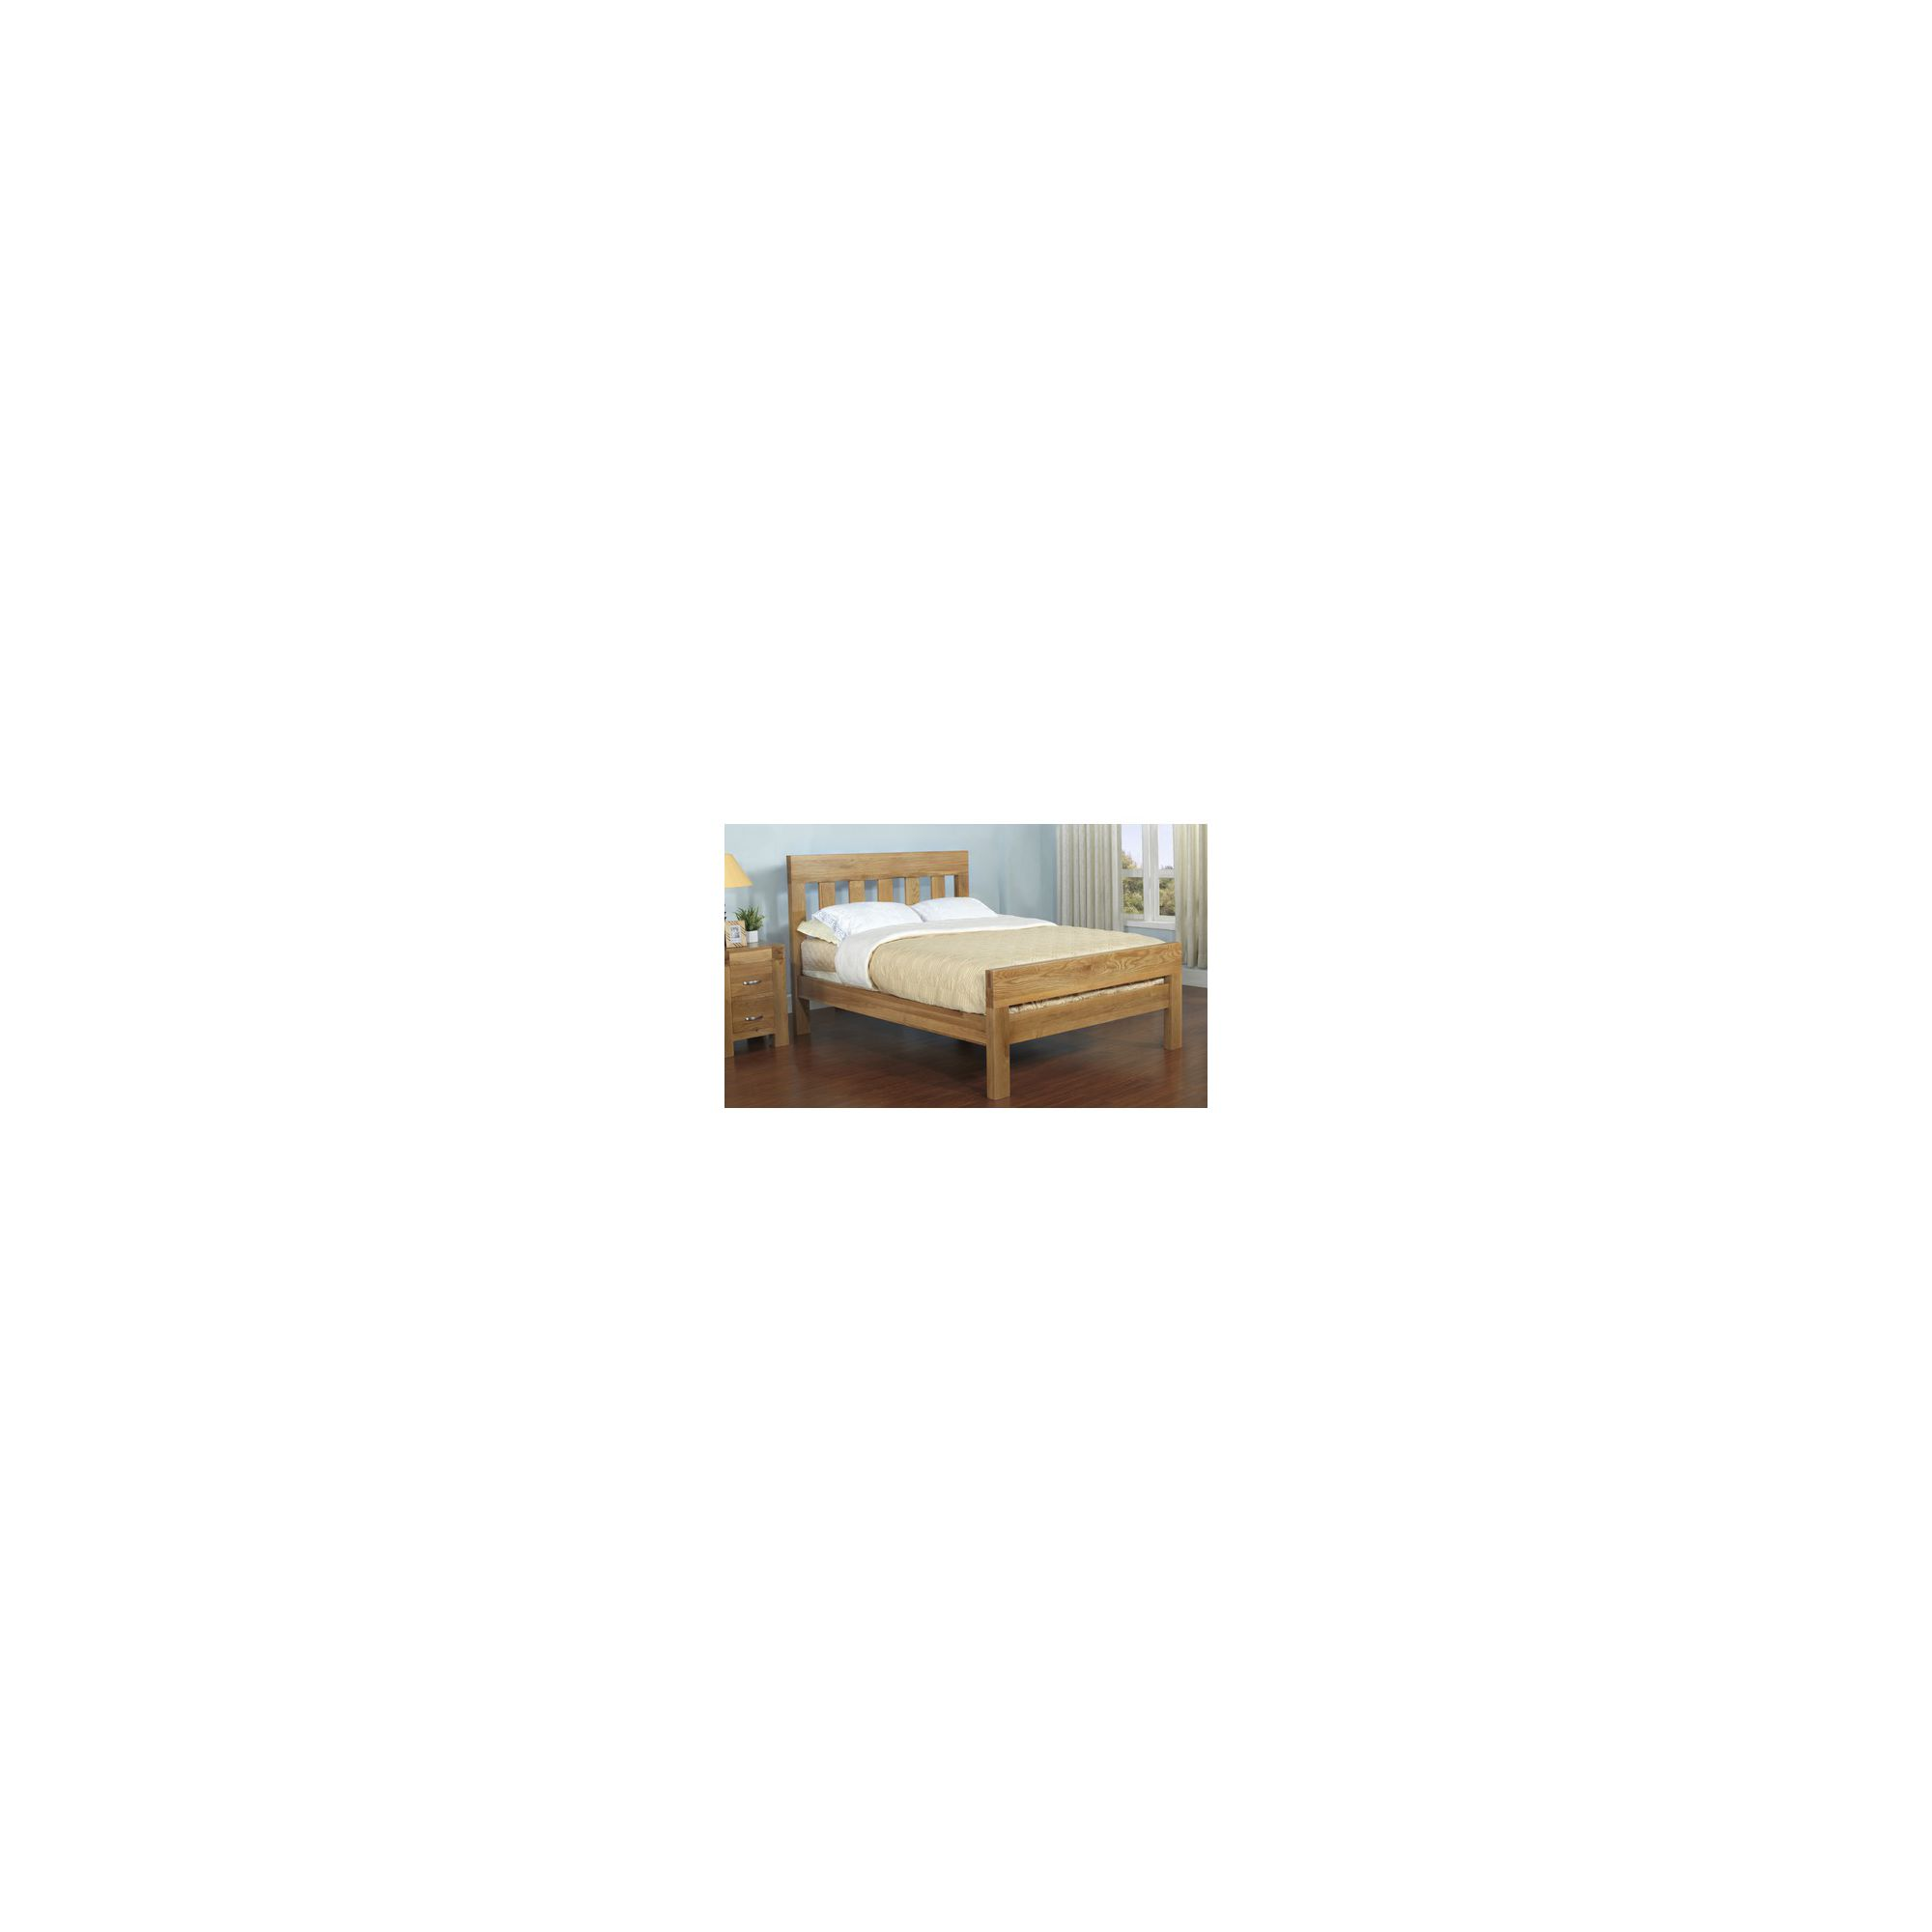 Hawkshead Rustic Oak Blonde Bed - King at Tesco Direct